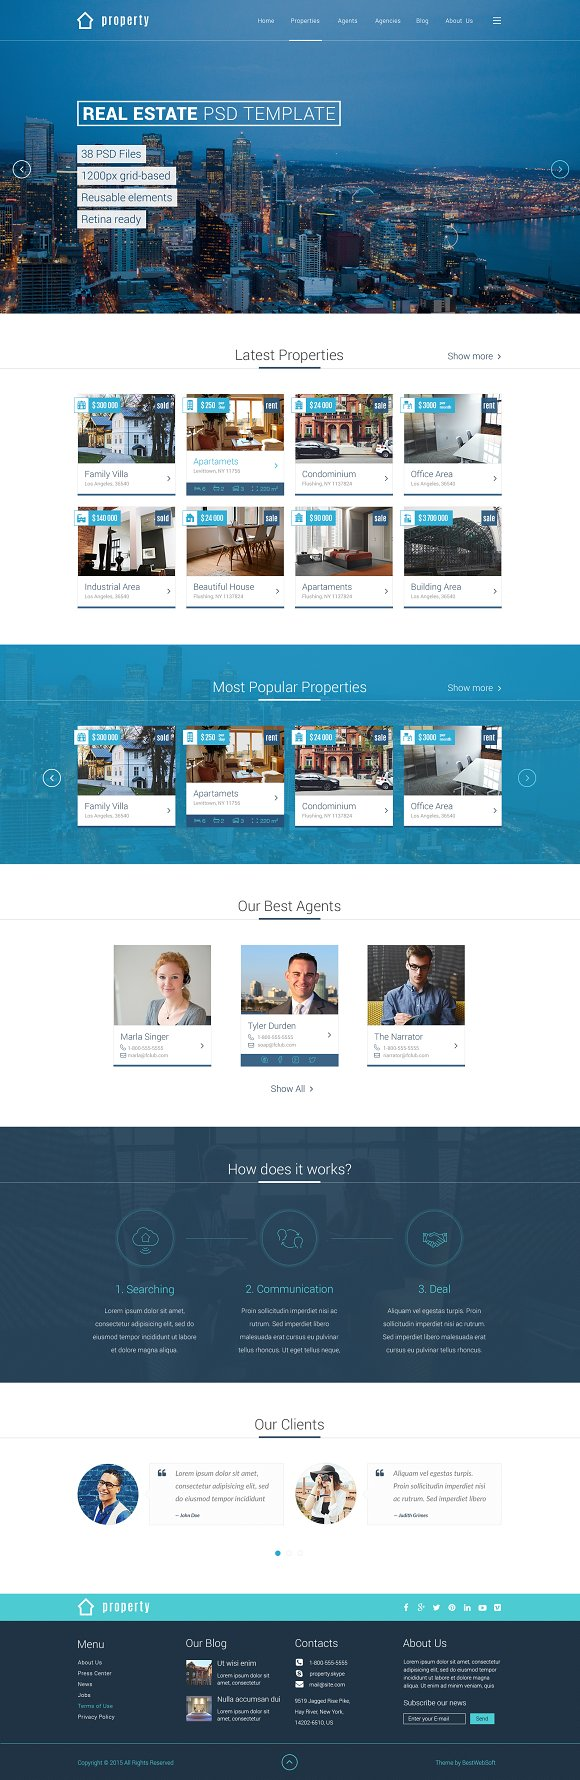 Property real estate psd template website templates - Home design websites free ...